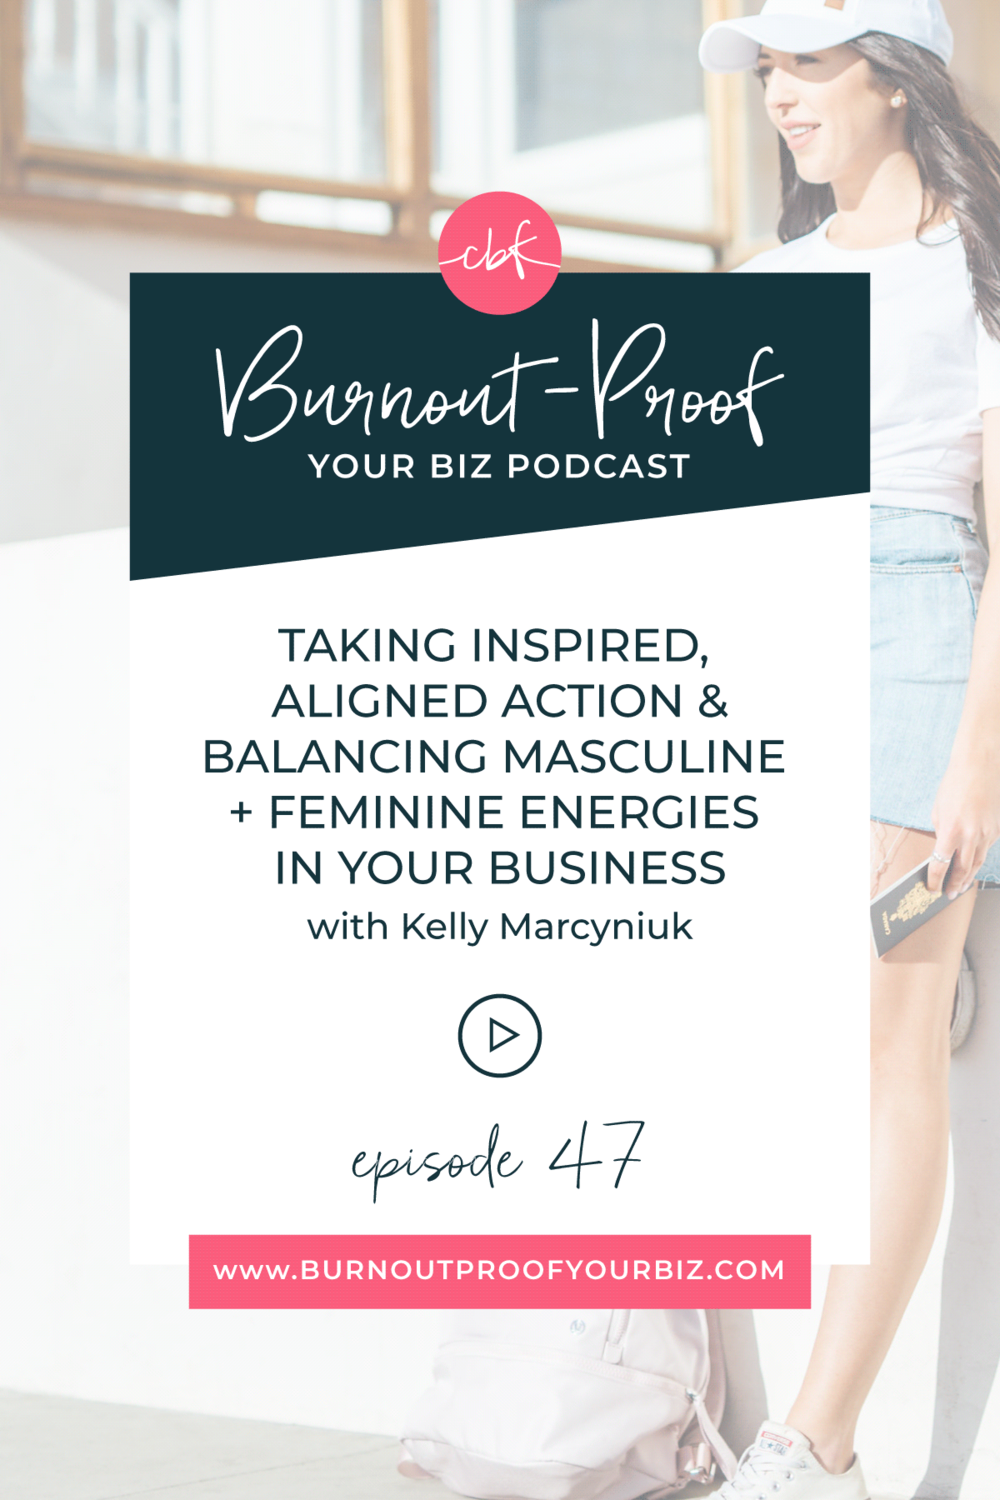 Burnout-Proof Your Biz Podcast with Chelsea B Foster | Episode 047 - Taking Inspired, Aligned Action & Balancing Masculine + Feminine Energies in Your Business with Kelly Marcyniuk | Learn how to run your biz and live your dream life on your own terms without the fear of burnout. ||| BALANCING YOUR ENERGY | TAKING INSPIRED ACTION | TRUSTING THE UNIVERSE | USING YOUR INTUITION | BUSINESS COACH | WORKFLOW & PRODUCTIVITY SPECIALIST | SYSTEMS & ORGANIZATION SPECIALIST FOR COACHES | ADD MORE FREEDOM TO YOUR LIFE | TRUST YOUR INTUITION | INSPIRED, ALIGNED ACTION | PAIR INTUITION WITH ACTION